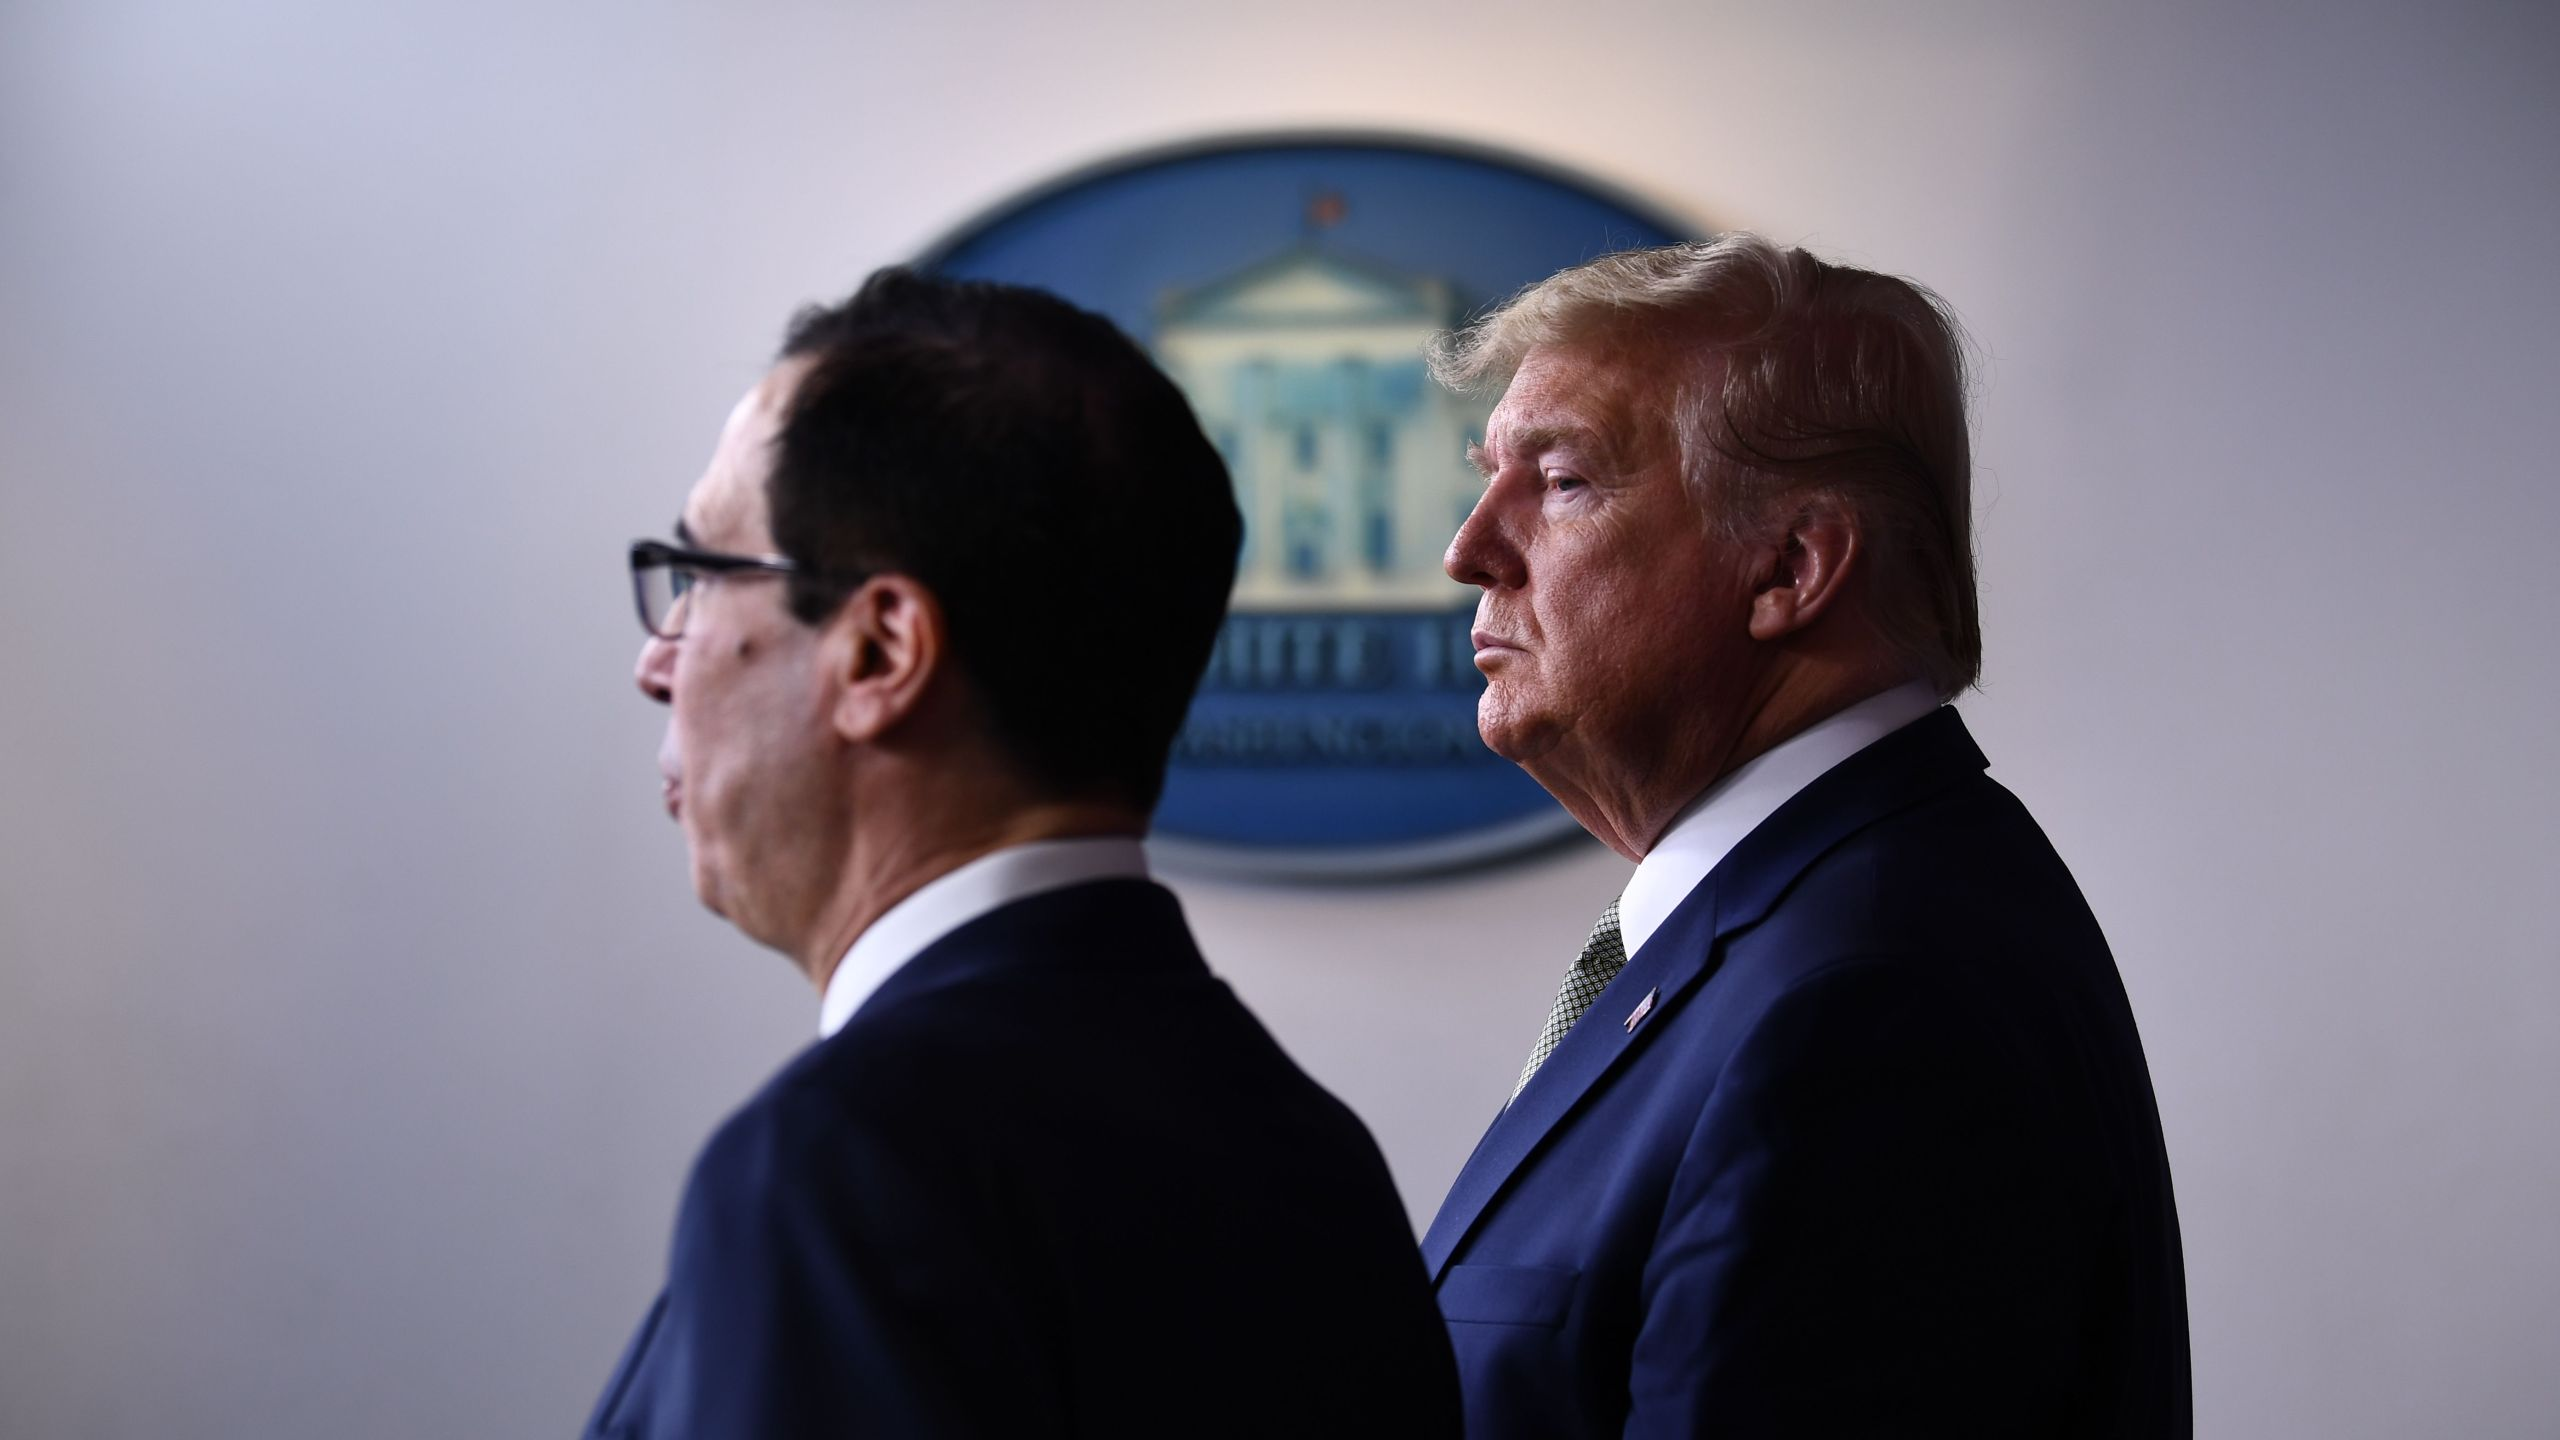 Donald Trump listens as Treasury Secretary Steven Mnuchin speaks during the daily press briefing on the Coronavirus pandemic situation at the White House on March 17, 2020 in Washington, D.C. (BRENDAN SMIALOWSKI/AFP via Getty Images)